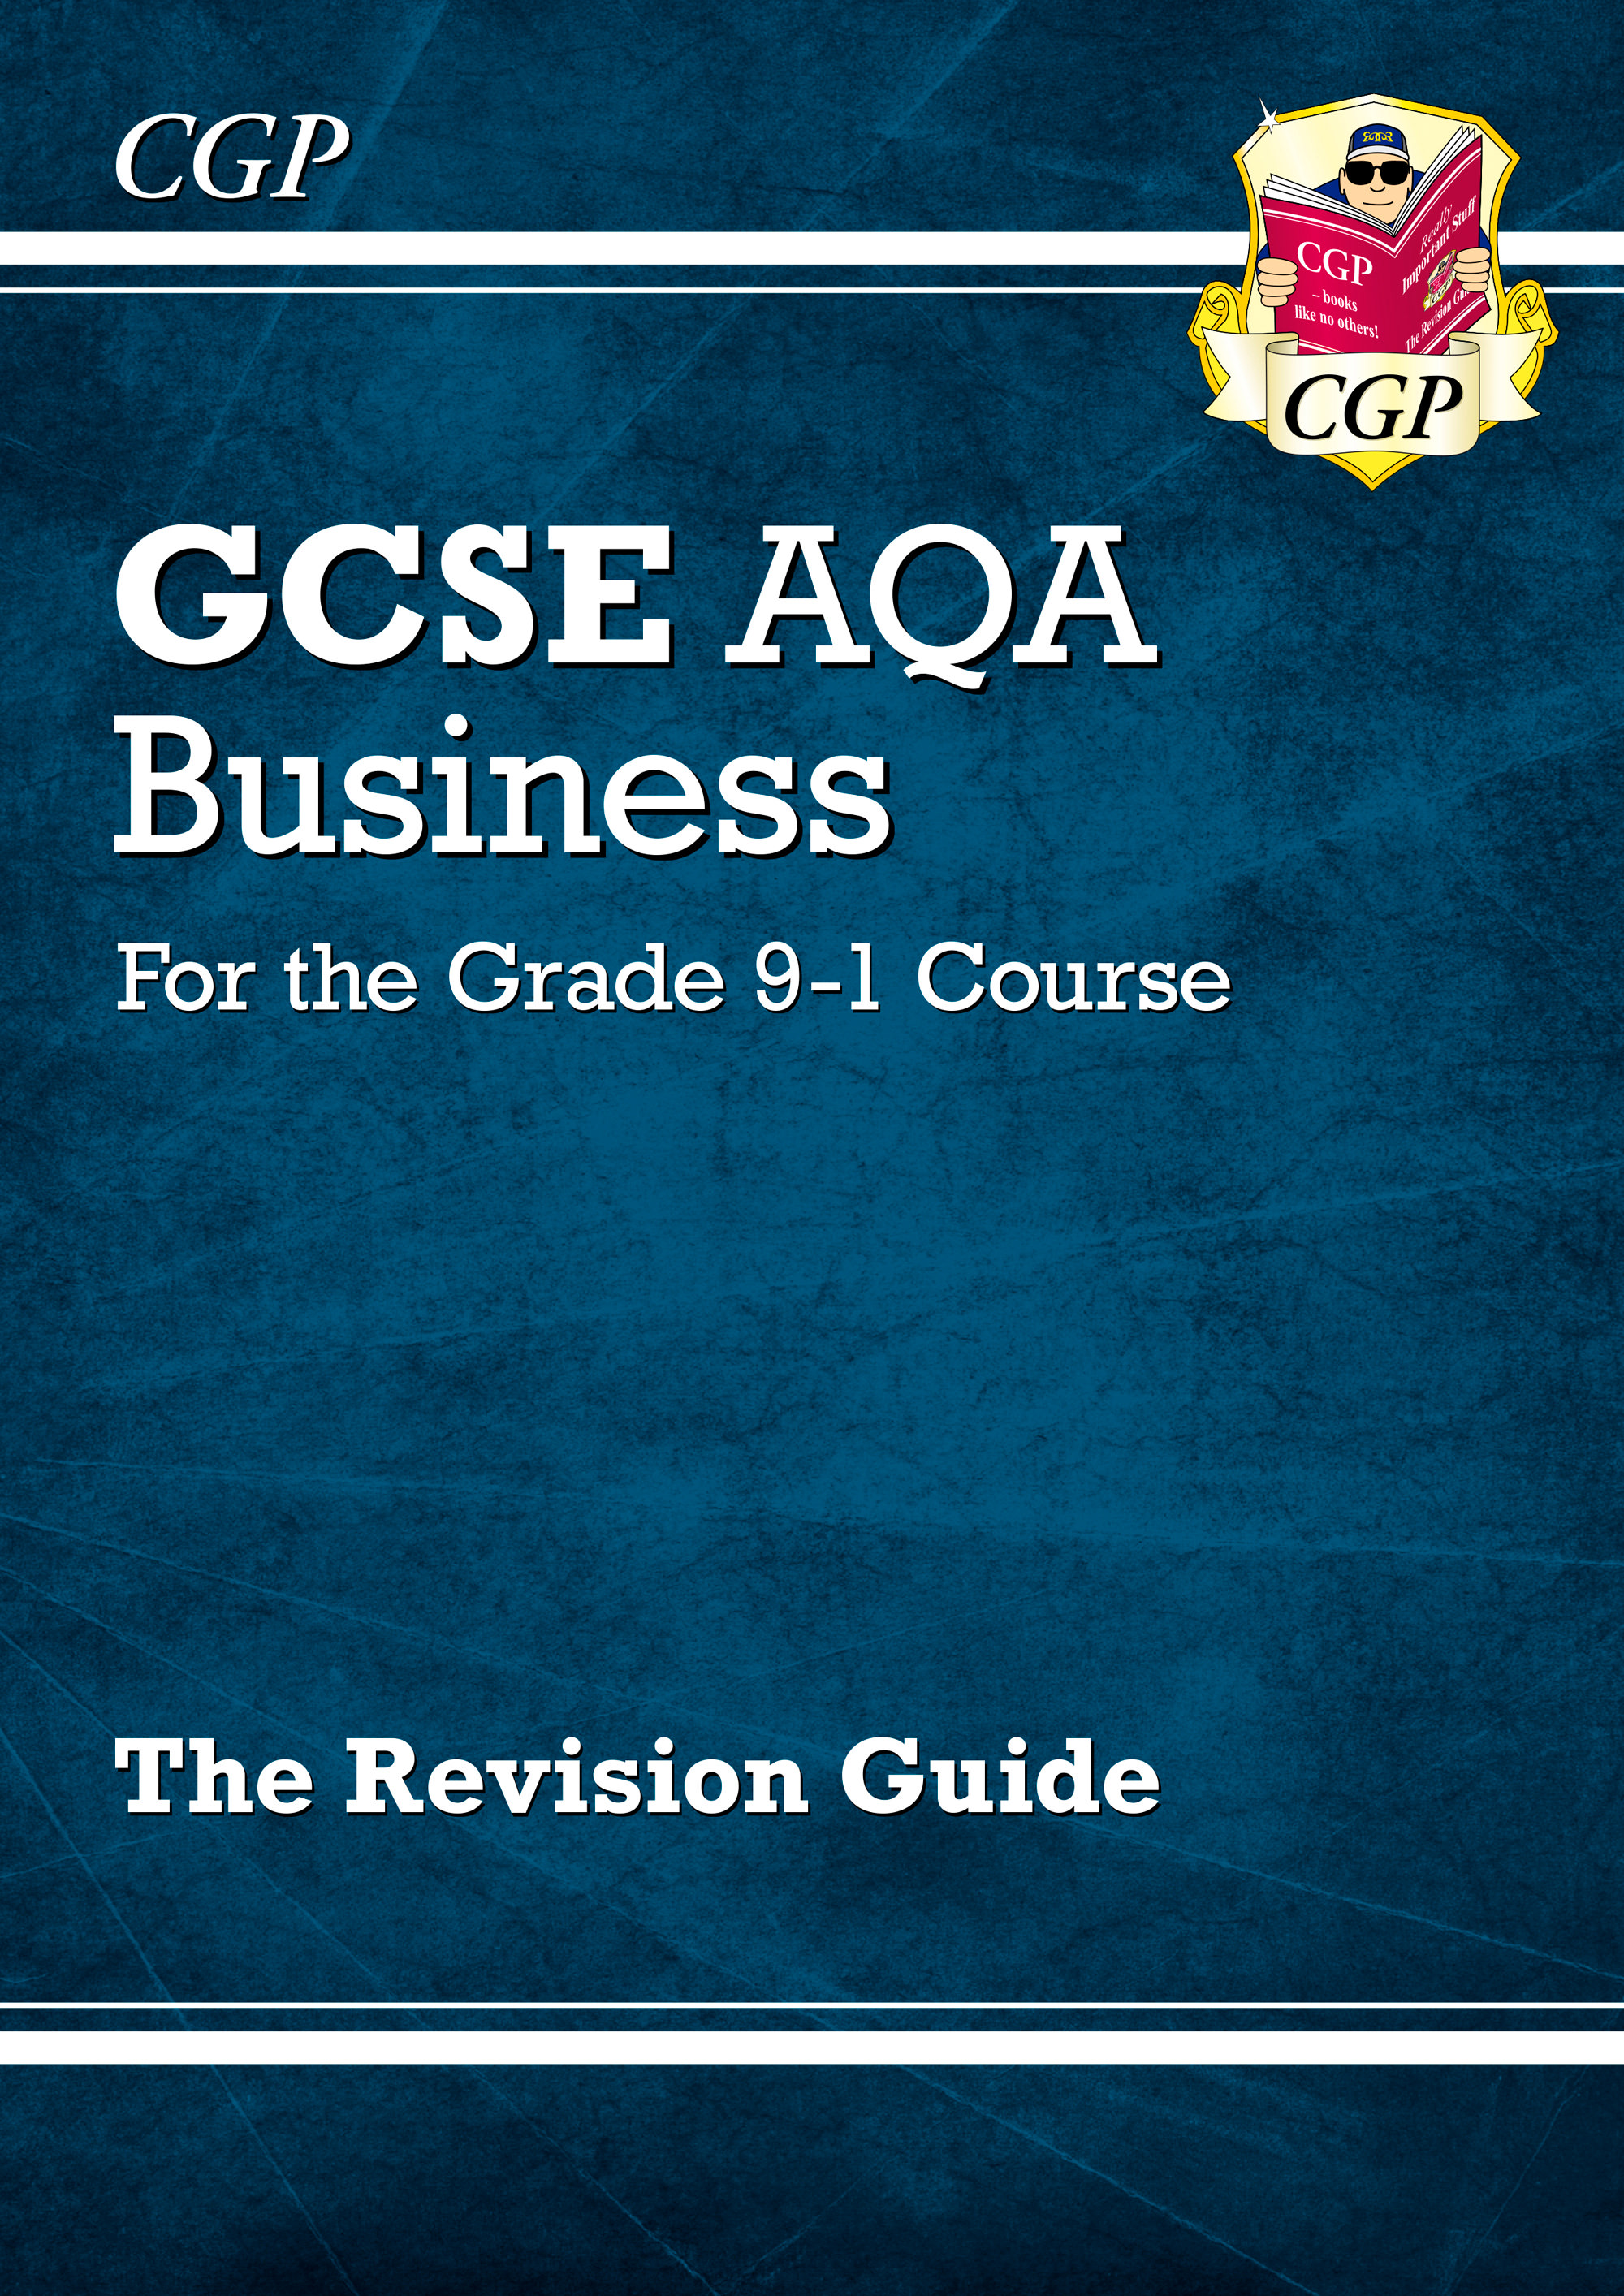 BUAR43DK - New GCSE Business AQA Revision Guide - for the Grade 9-1 Course